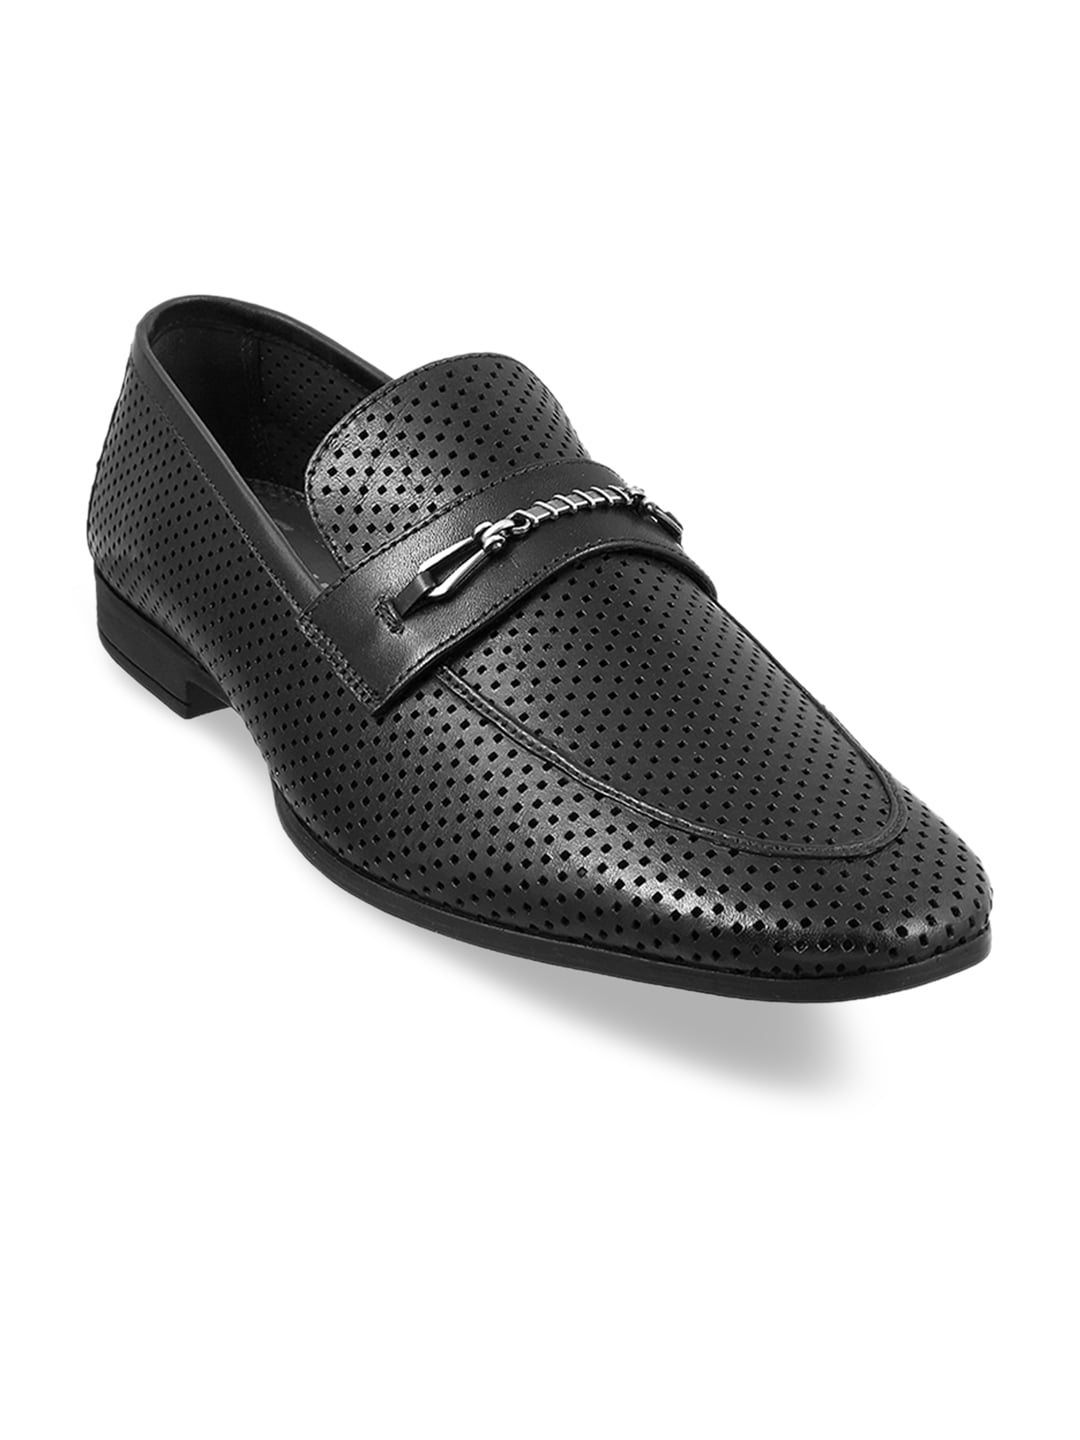 4a453aca823 Mochi Shoes - Shop Online for Mochi Shoes in India